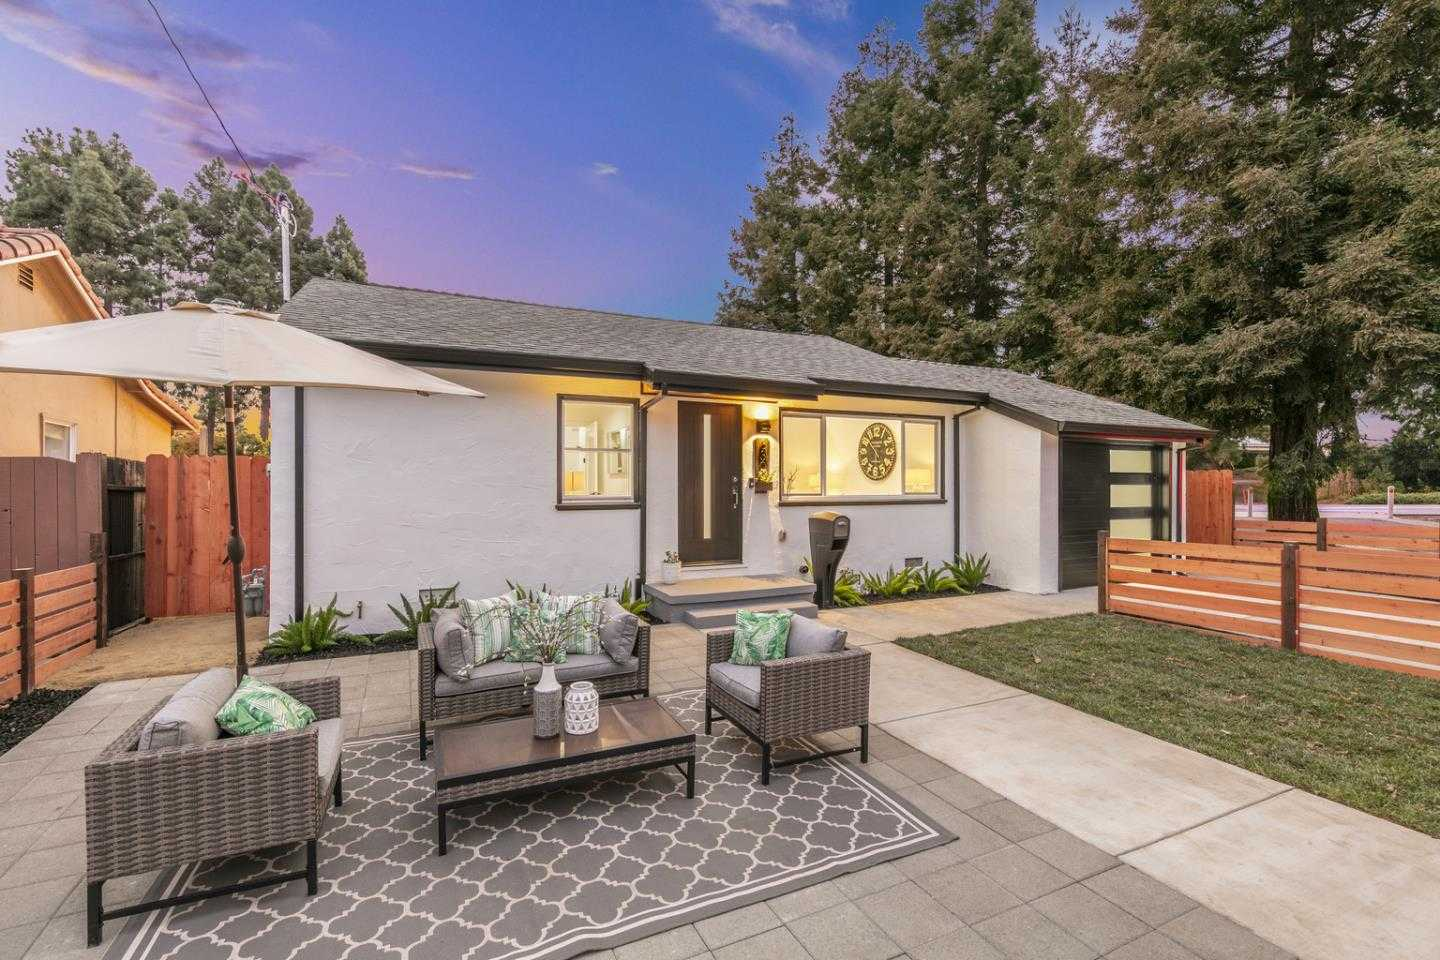 $2,188,000 - 4Br/2Ba -  for Sale in Sunnyvale